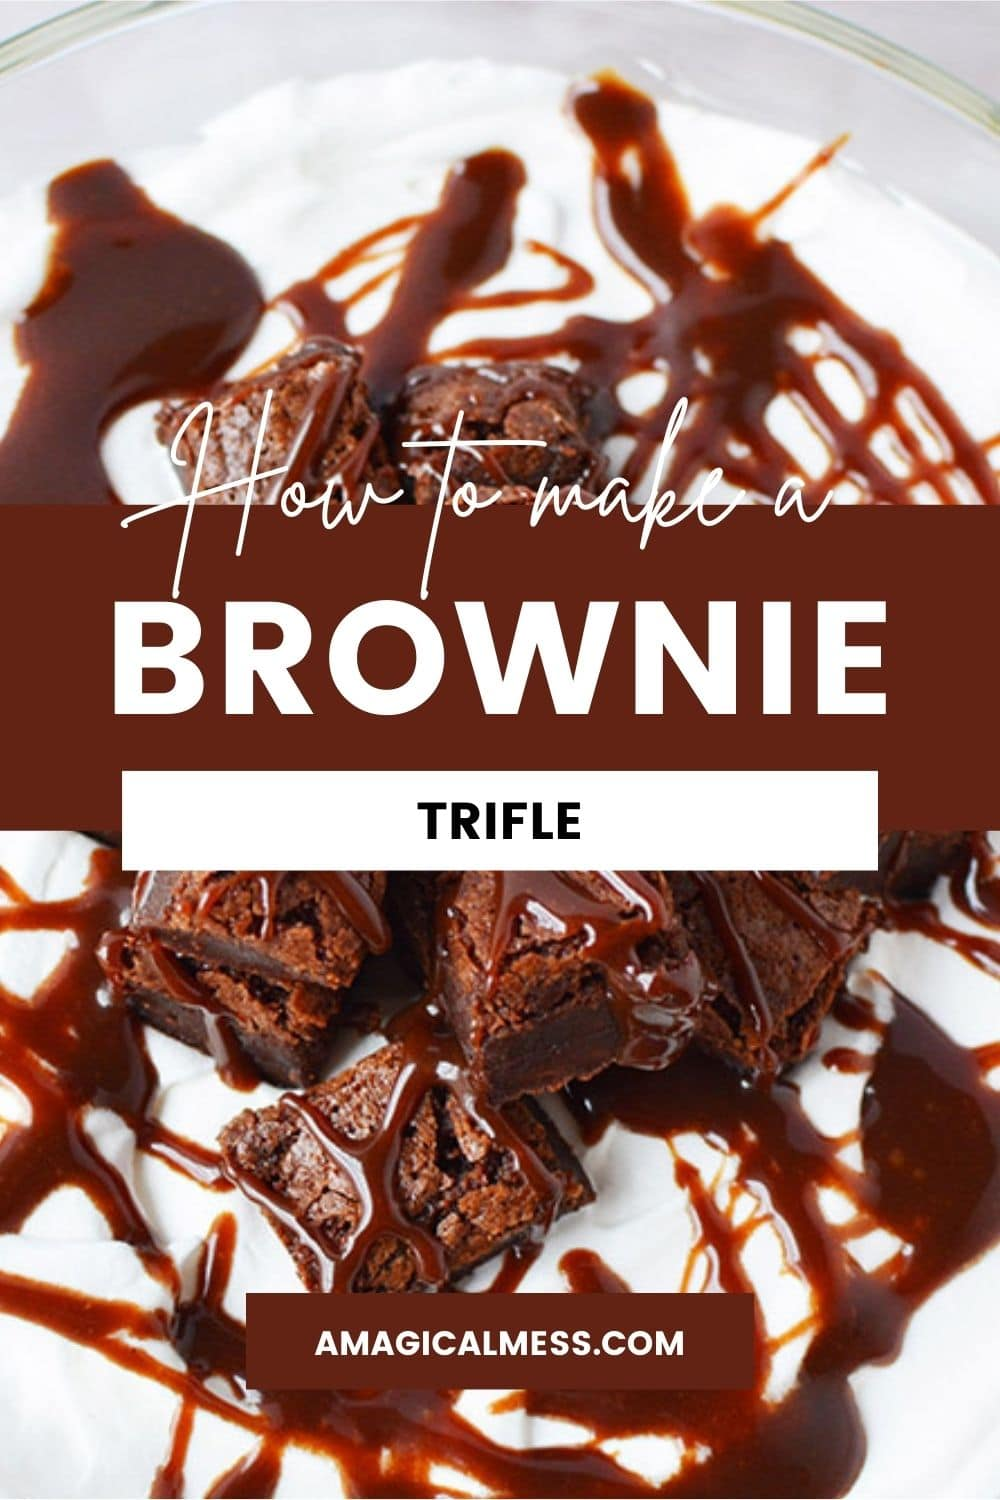 Brownies drizzled with hot fudge on top of a brownie trifle.